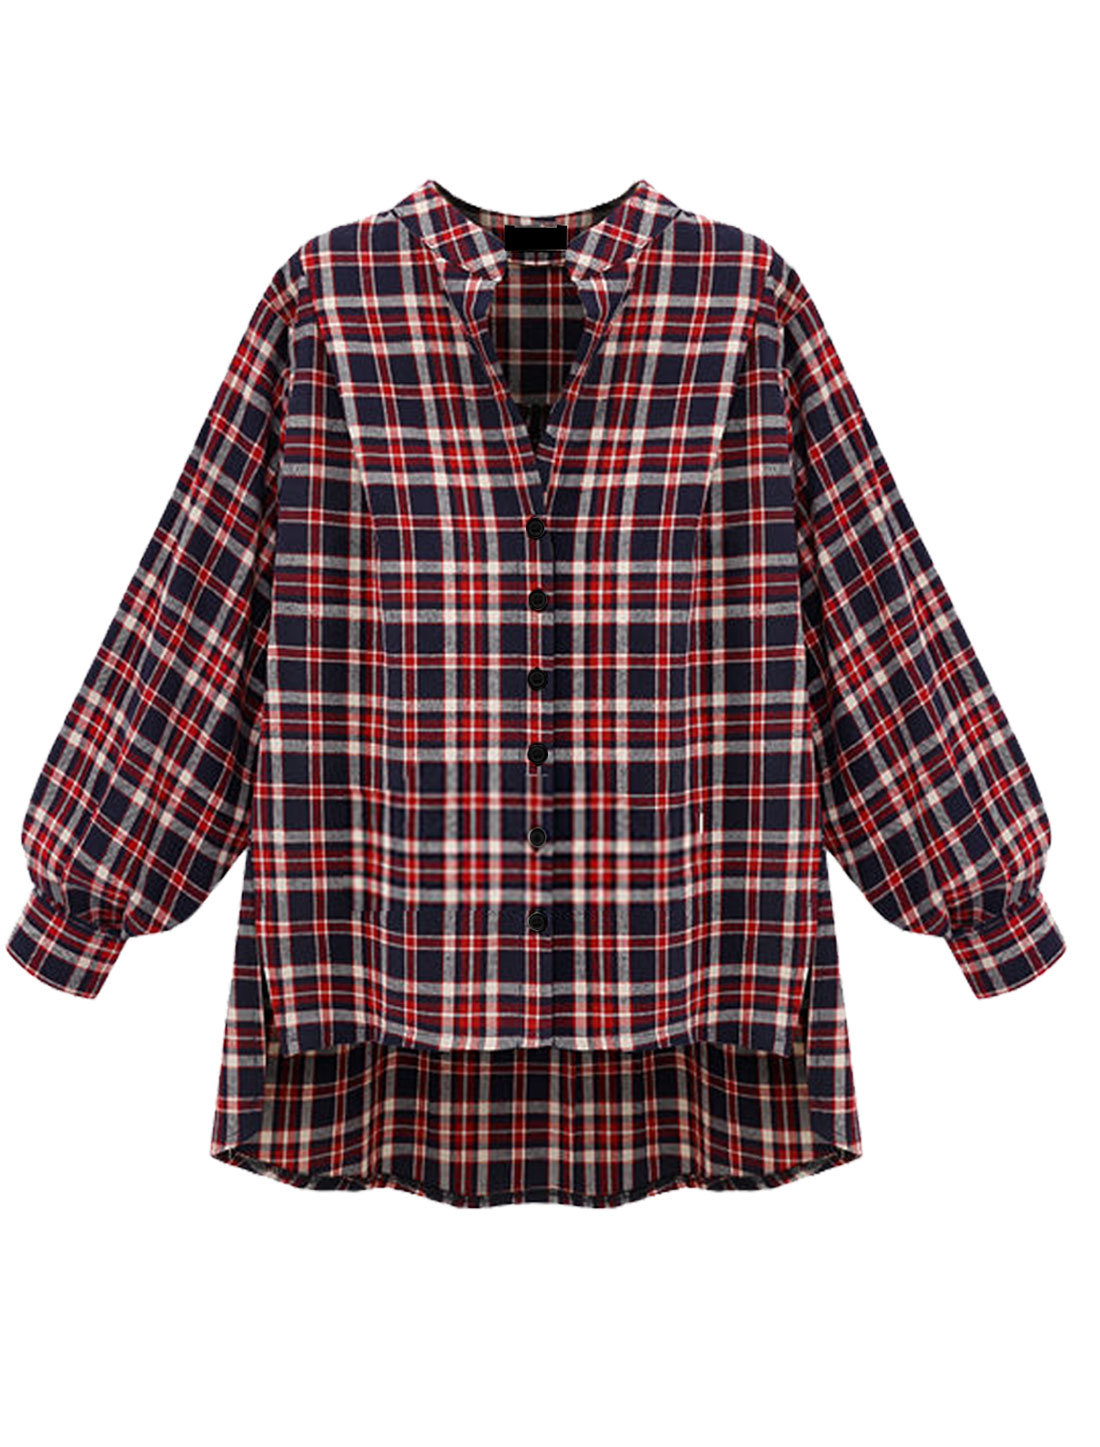 Women Convertible Collar Plaids High Low Hem Thin Jacket Red Navy Blue XS